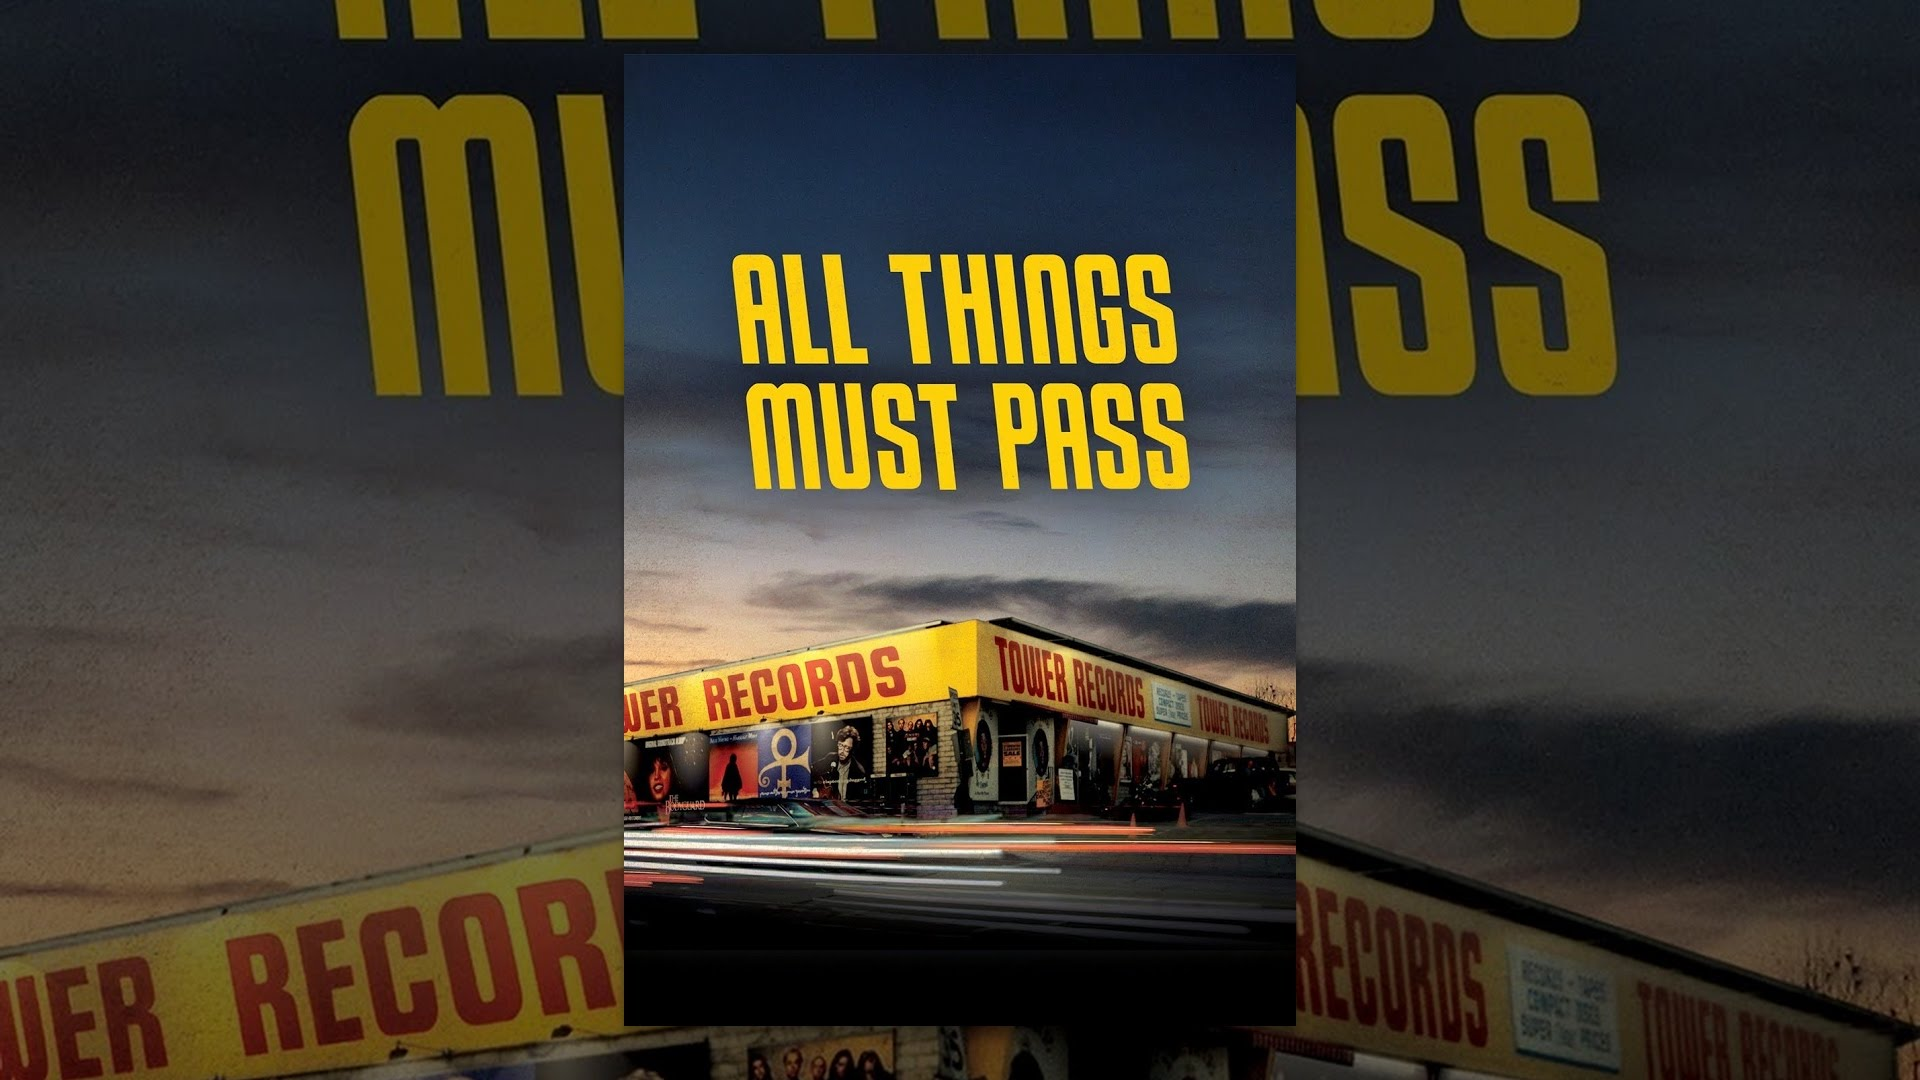 Download All Things Must Pass